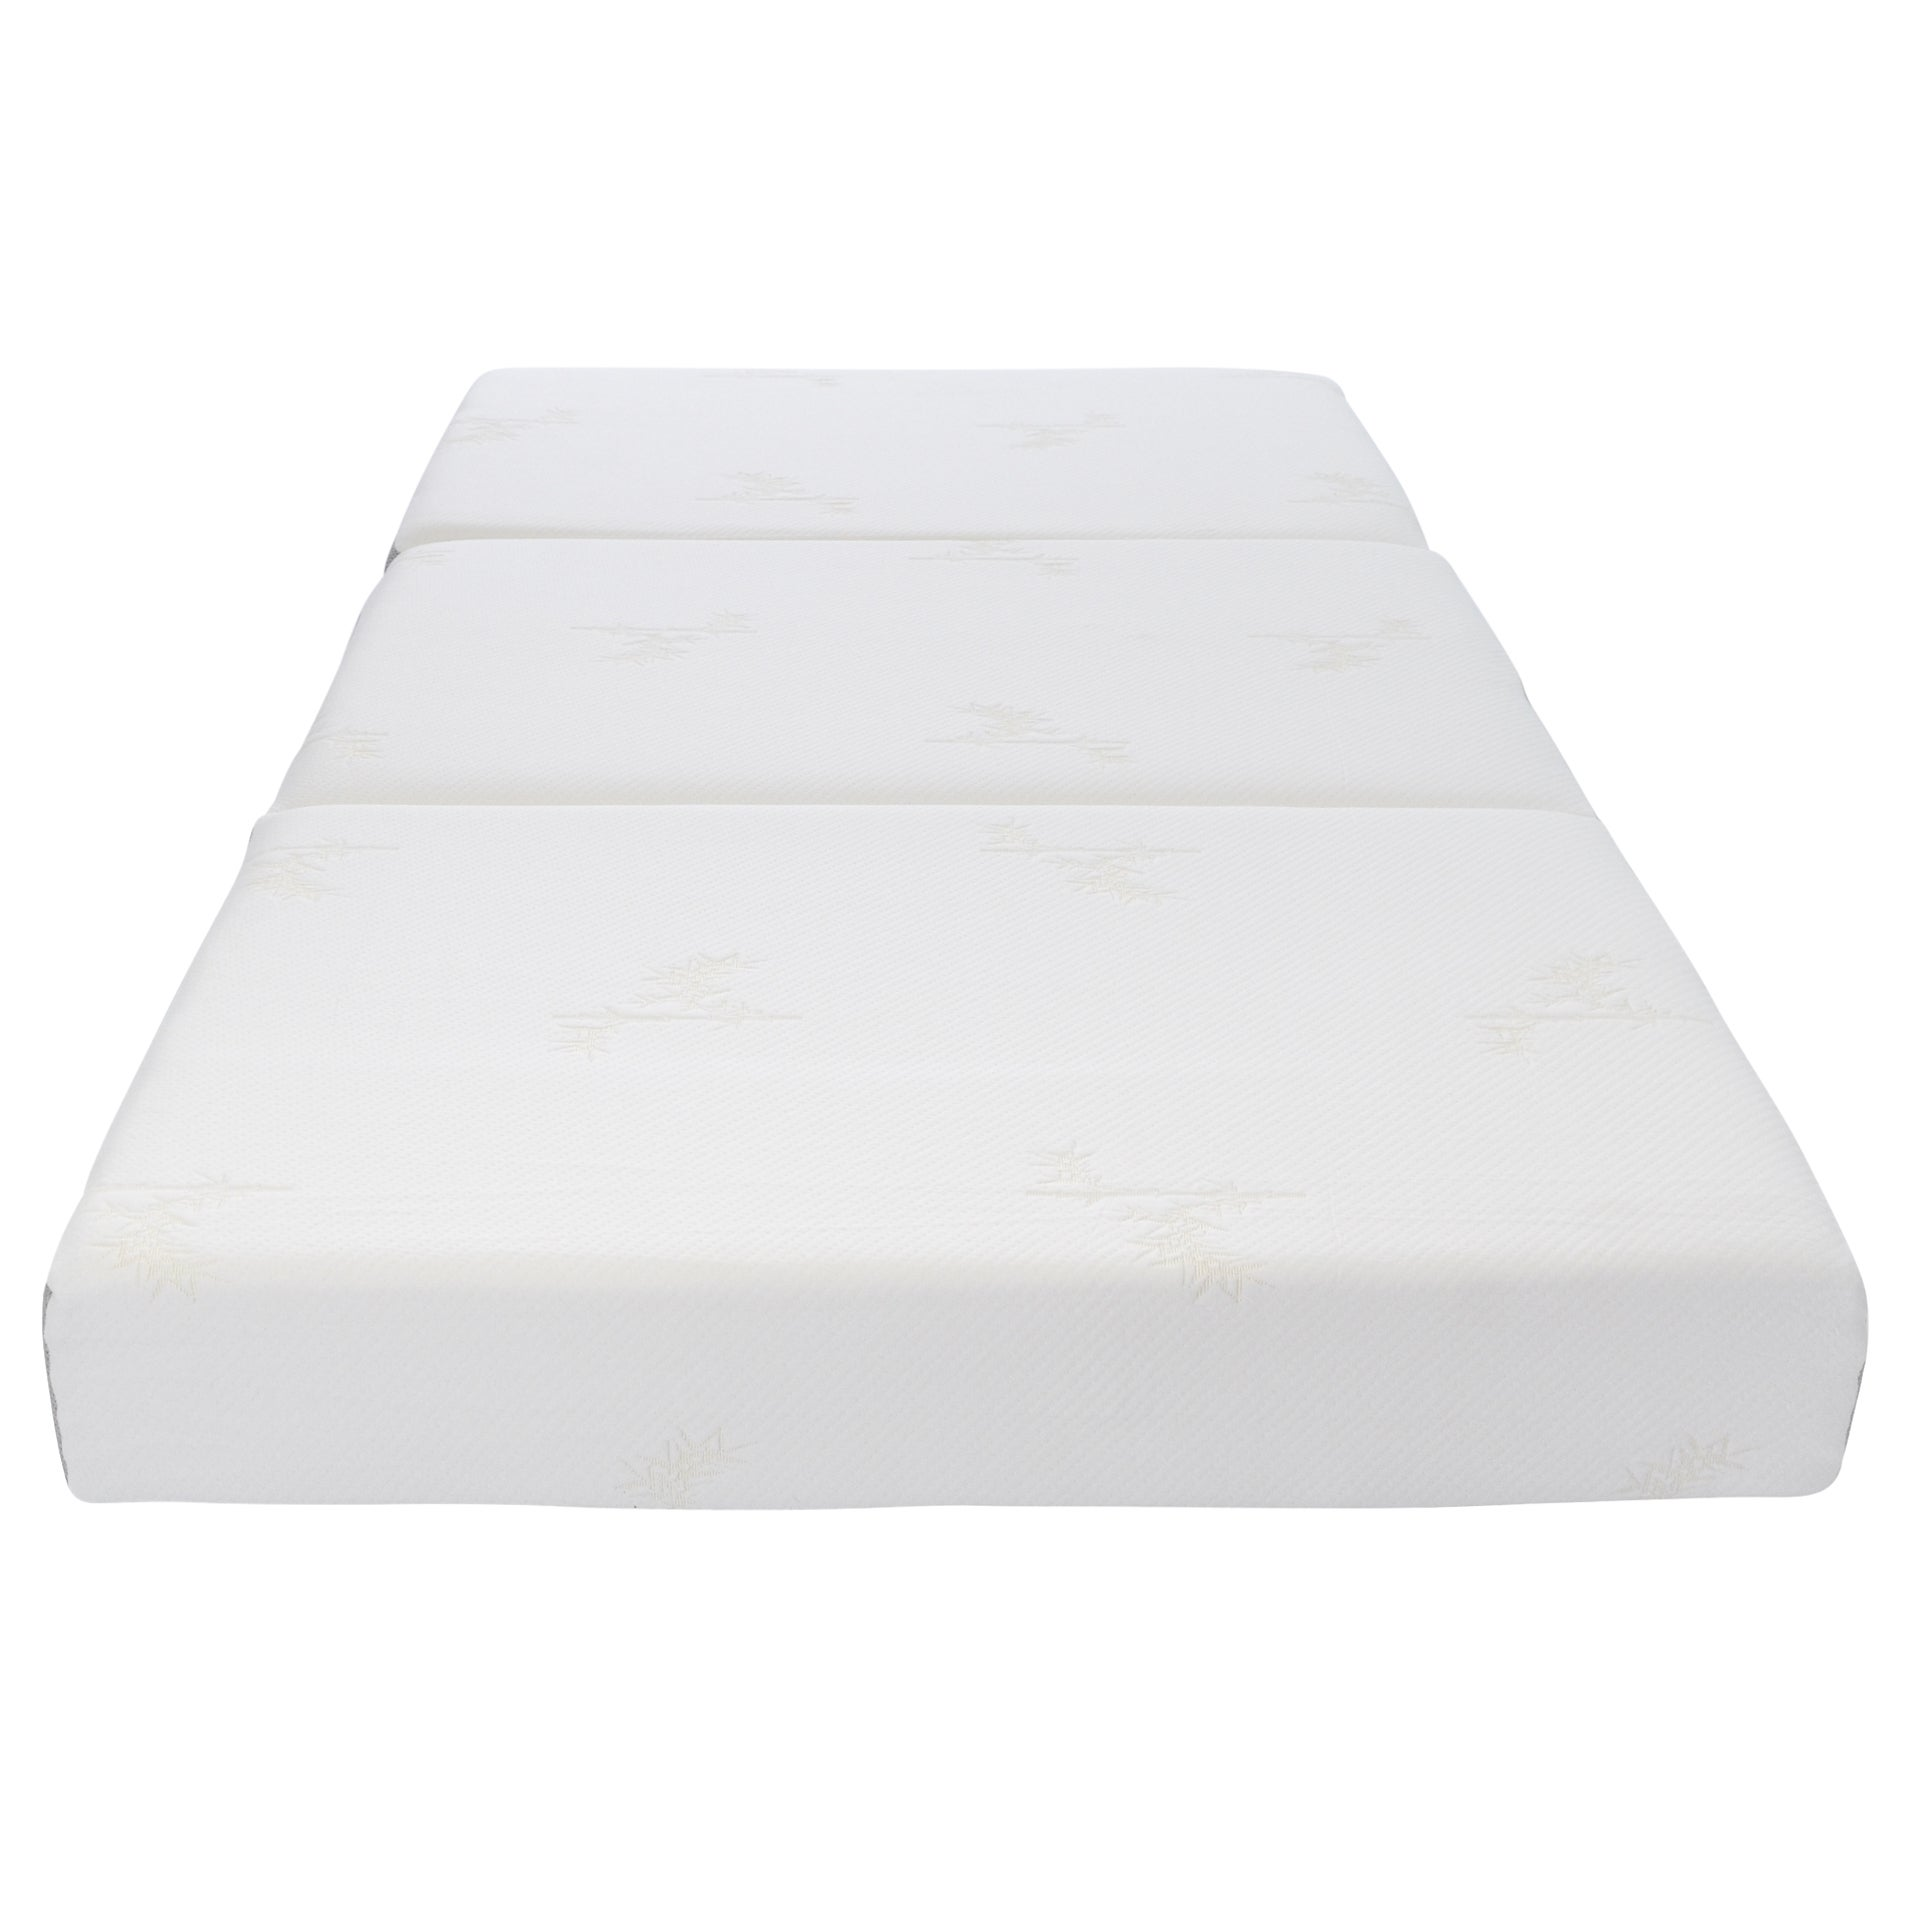 gusset topper lavish inch feather twin amazon com dp size down duck cover mattress kitchen home